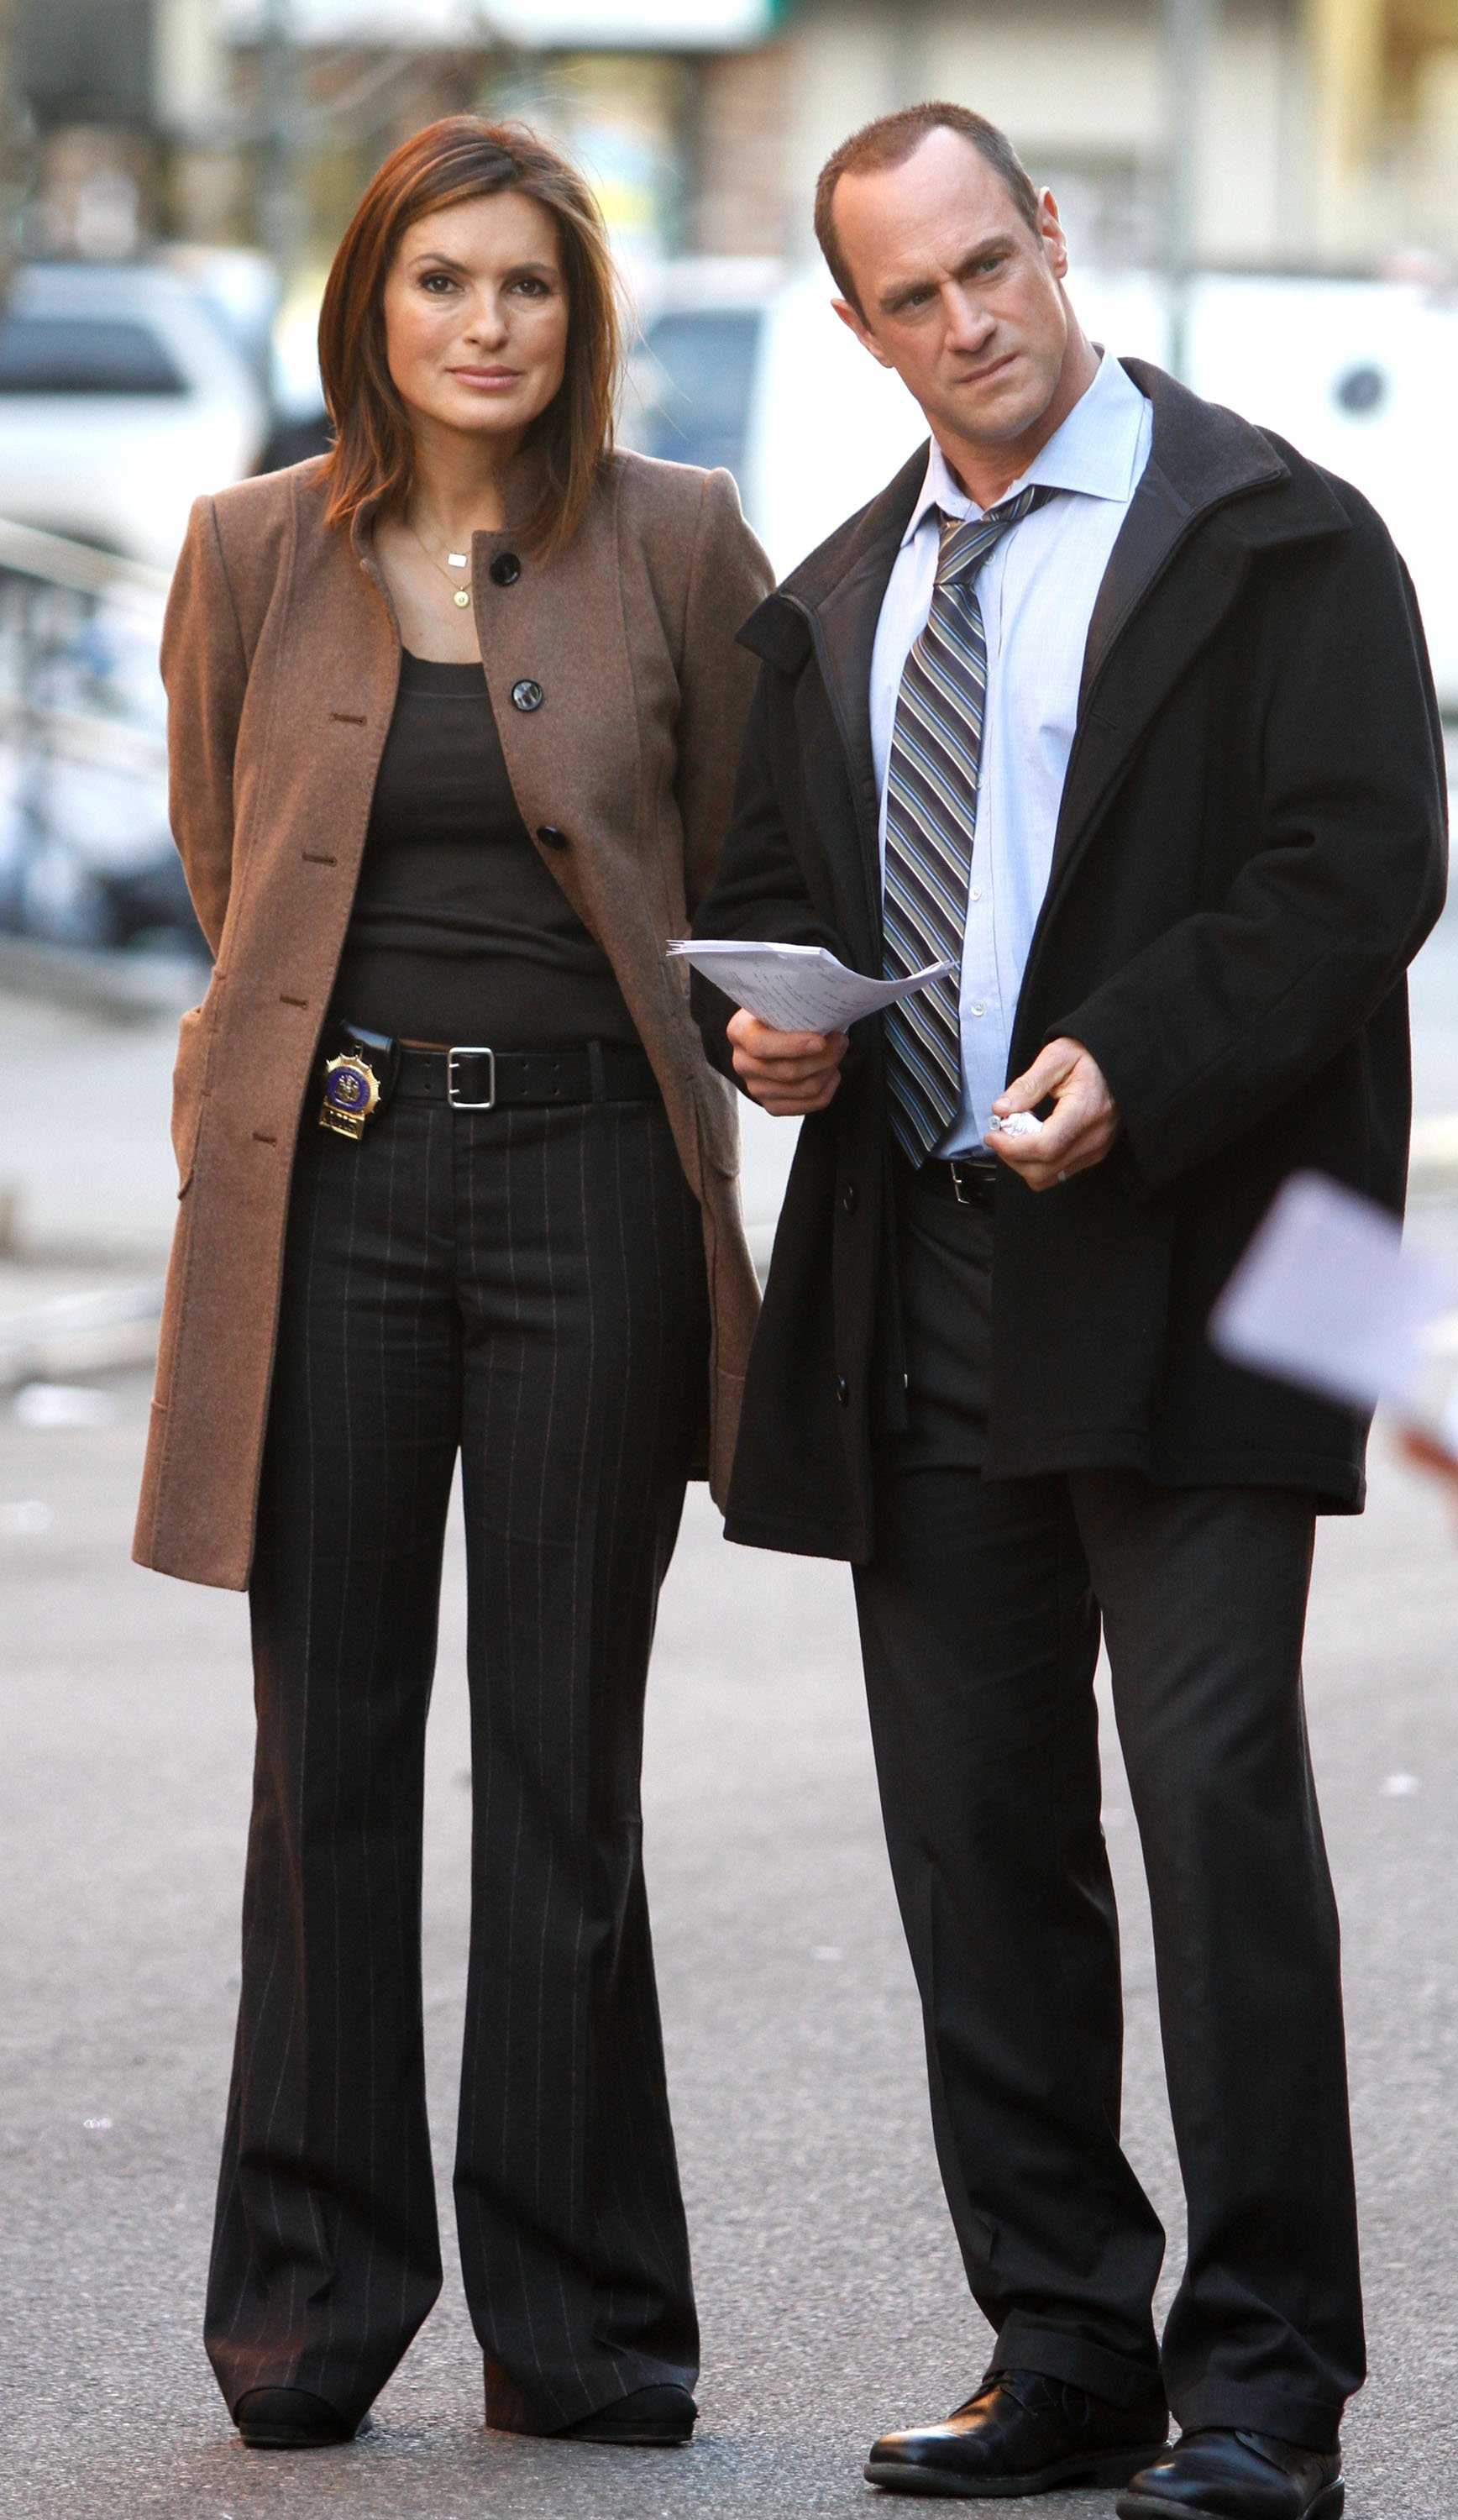 """Mariska Hargitay and Chris Meloni are seen working on the set of the NBC TV Show """"Law and Order SVU"""" in Harlem on March 17, 2010 in New York 